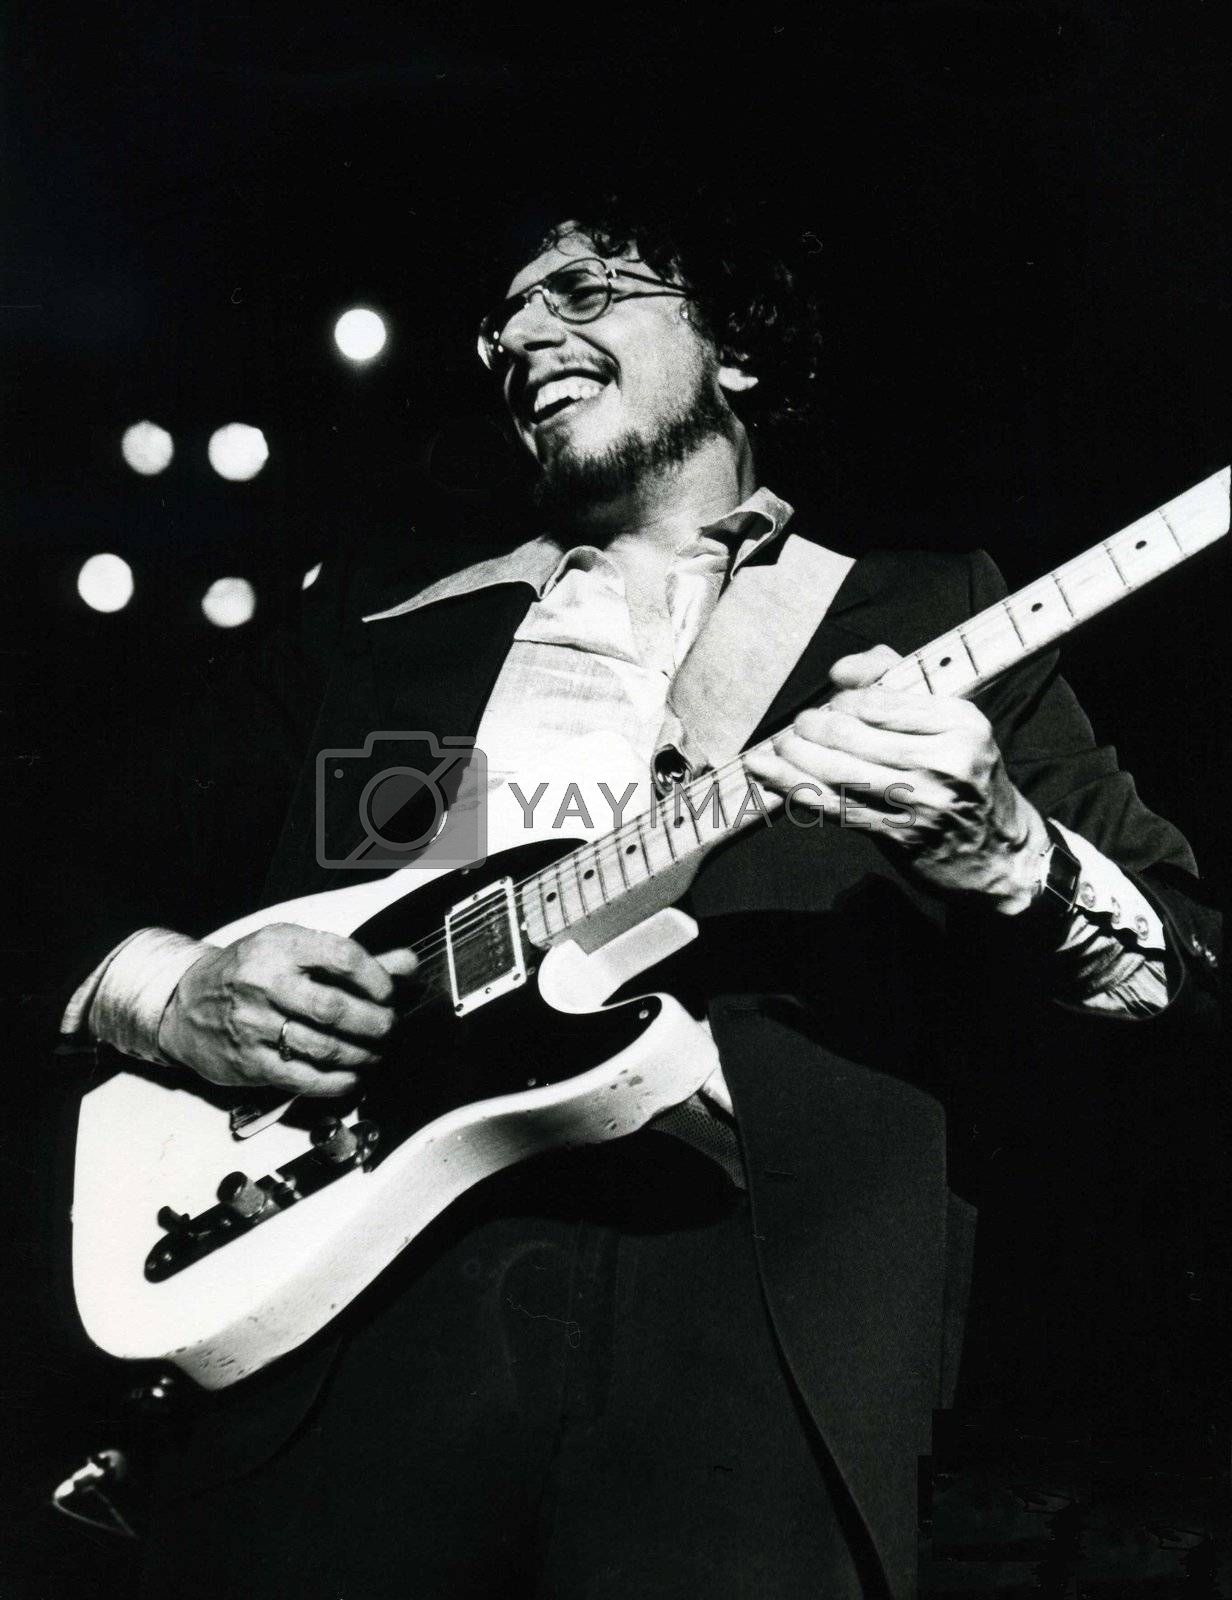 David Bromberg performing at Symphony Hall in Boston in 1978